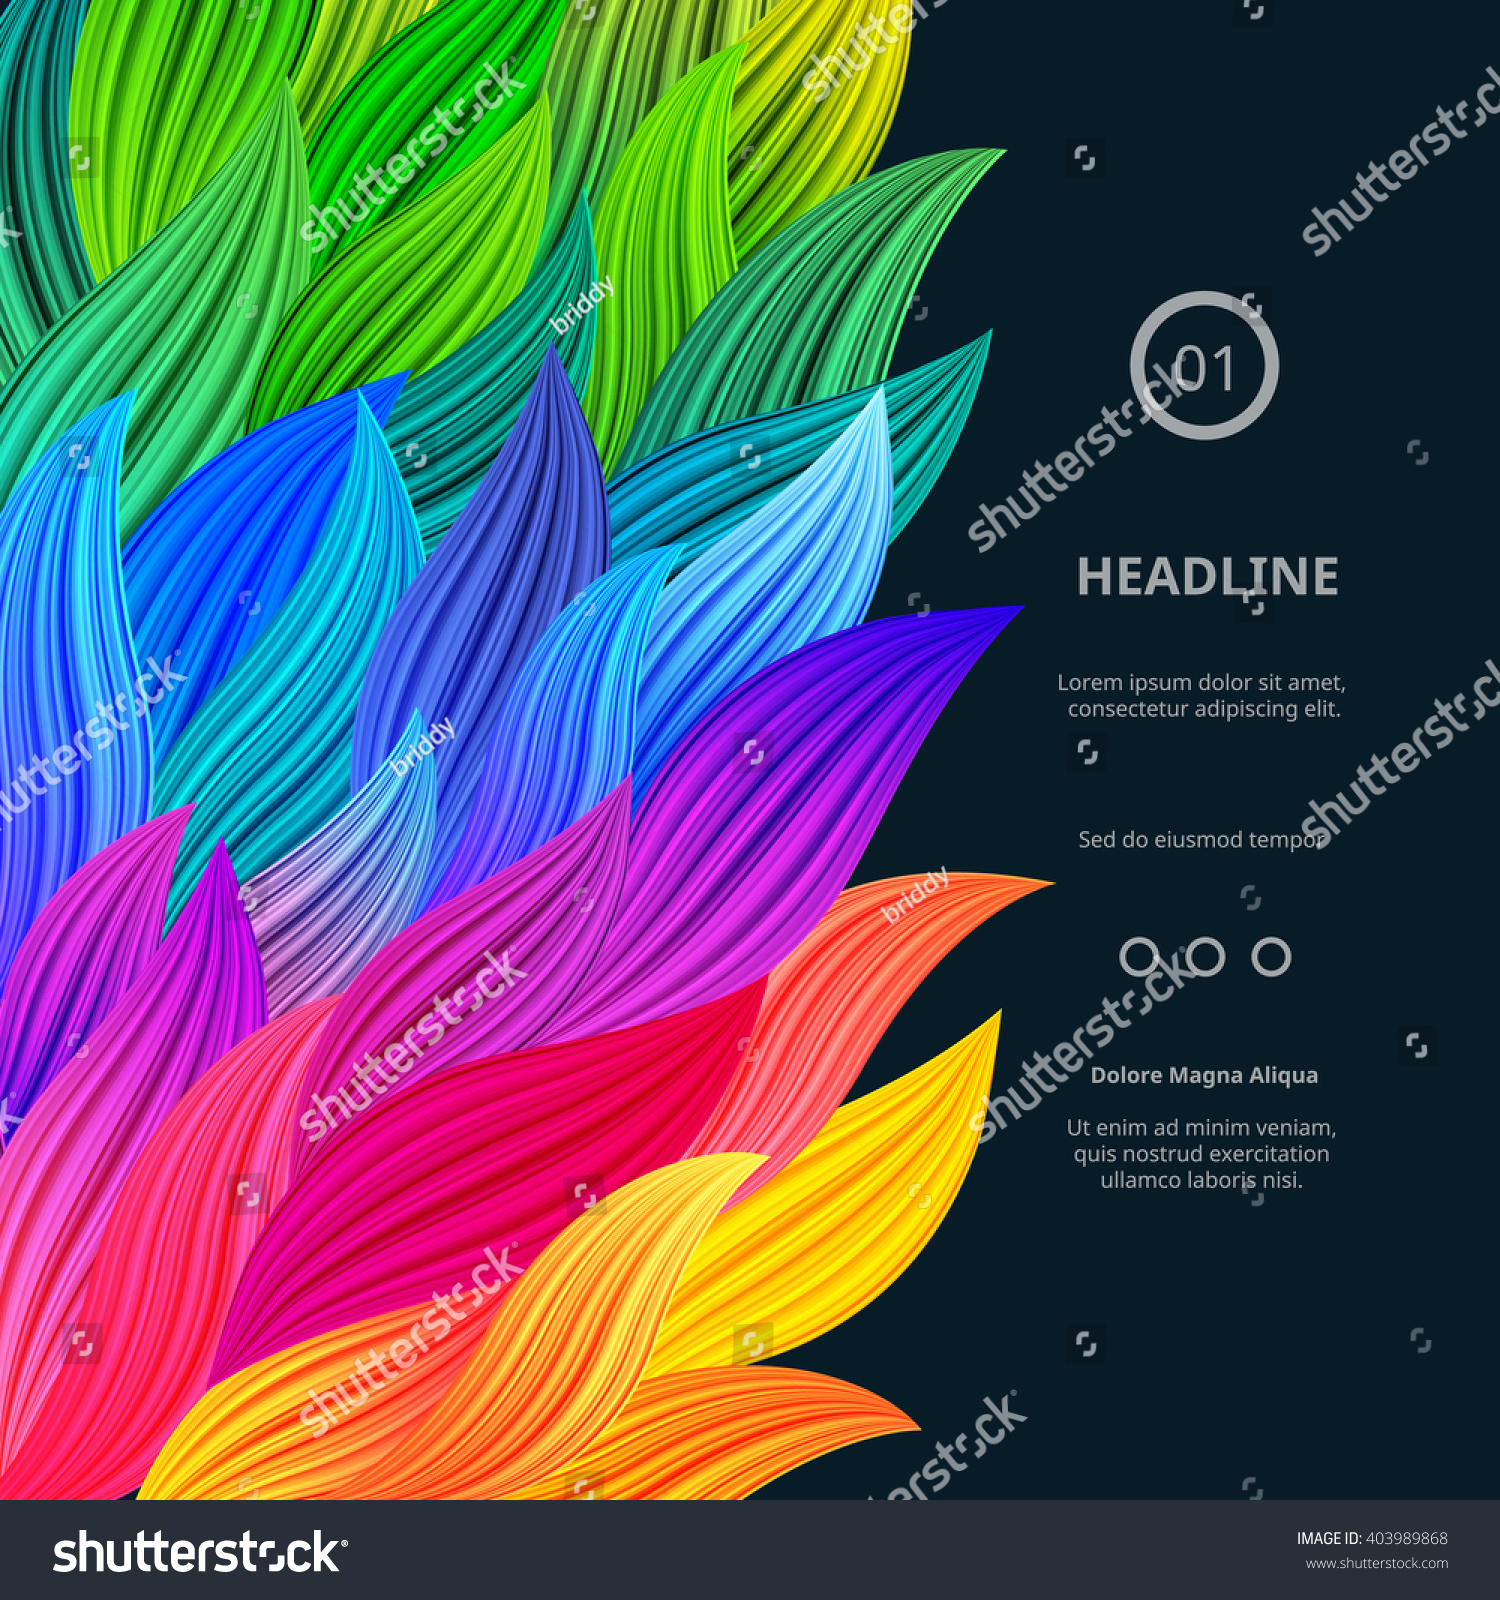 Awesome Bright Colorful Borders. Vector Gradient